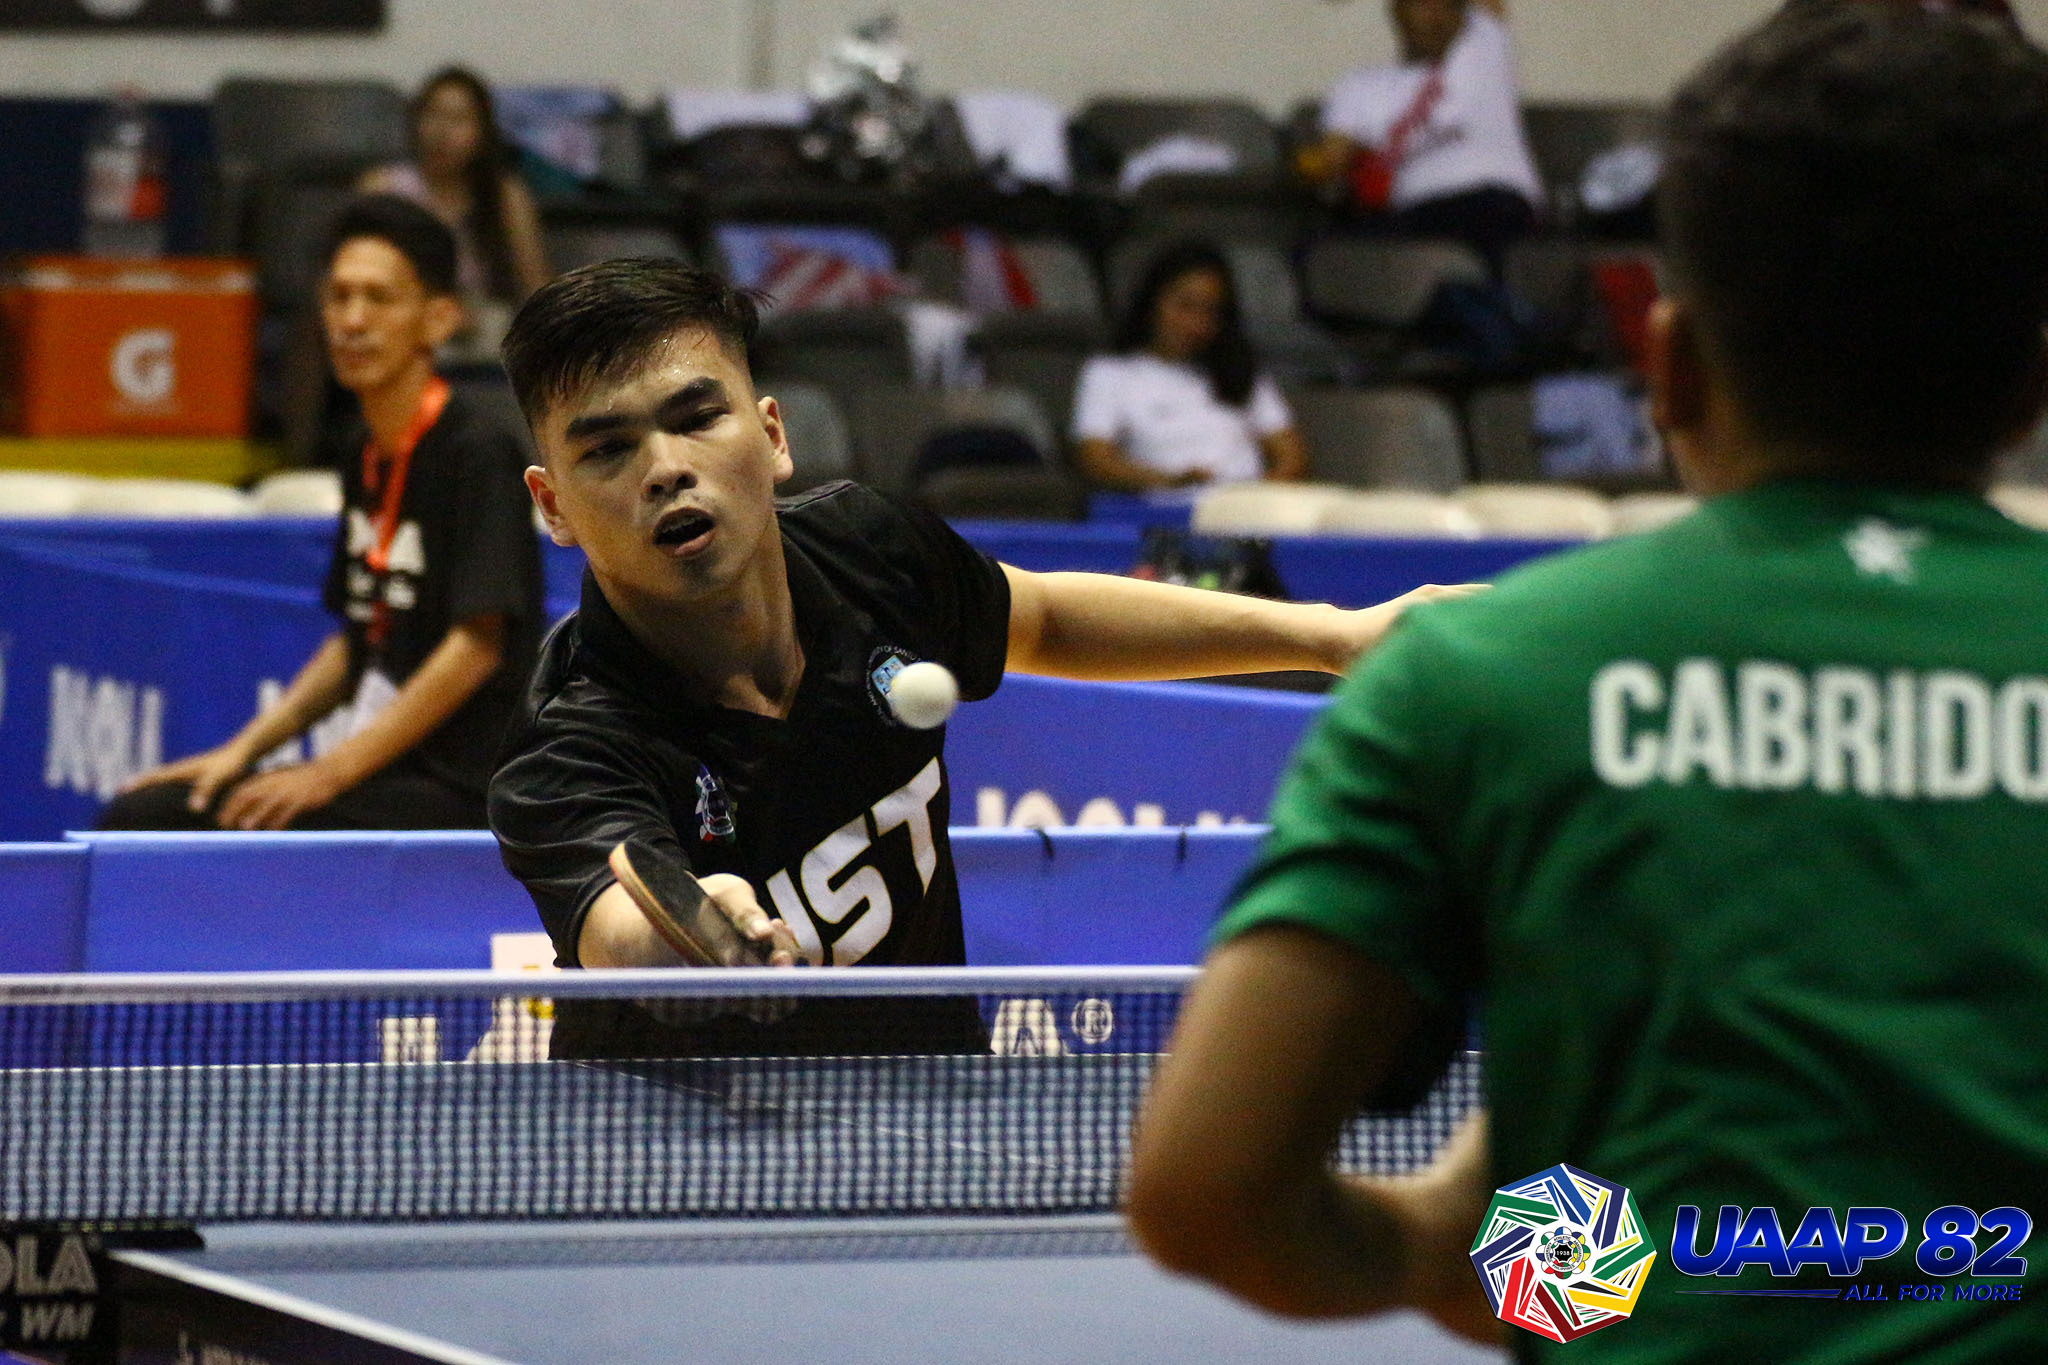 UST cruises to eighth straight win in UAAP Men's Table Tennis - Tiebreaker Times